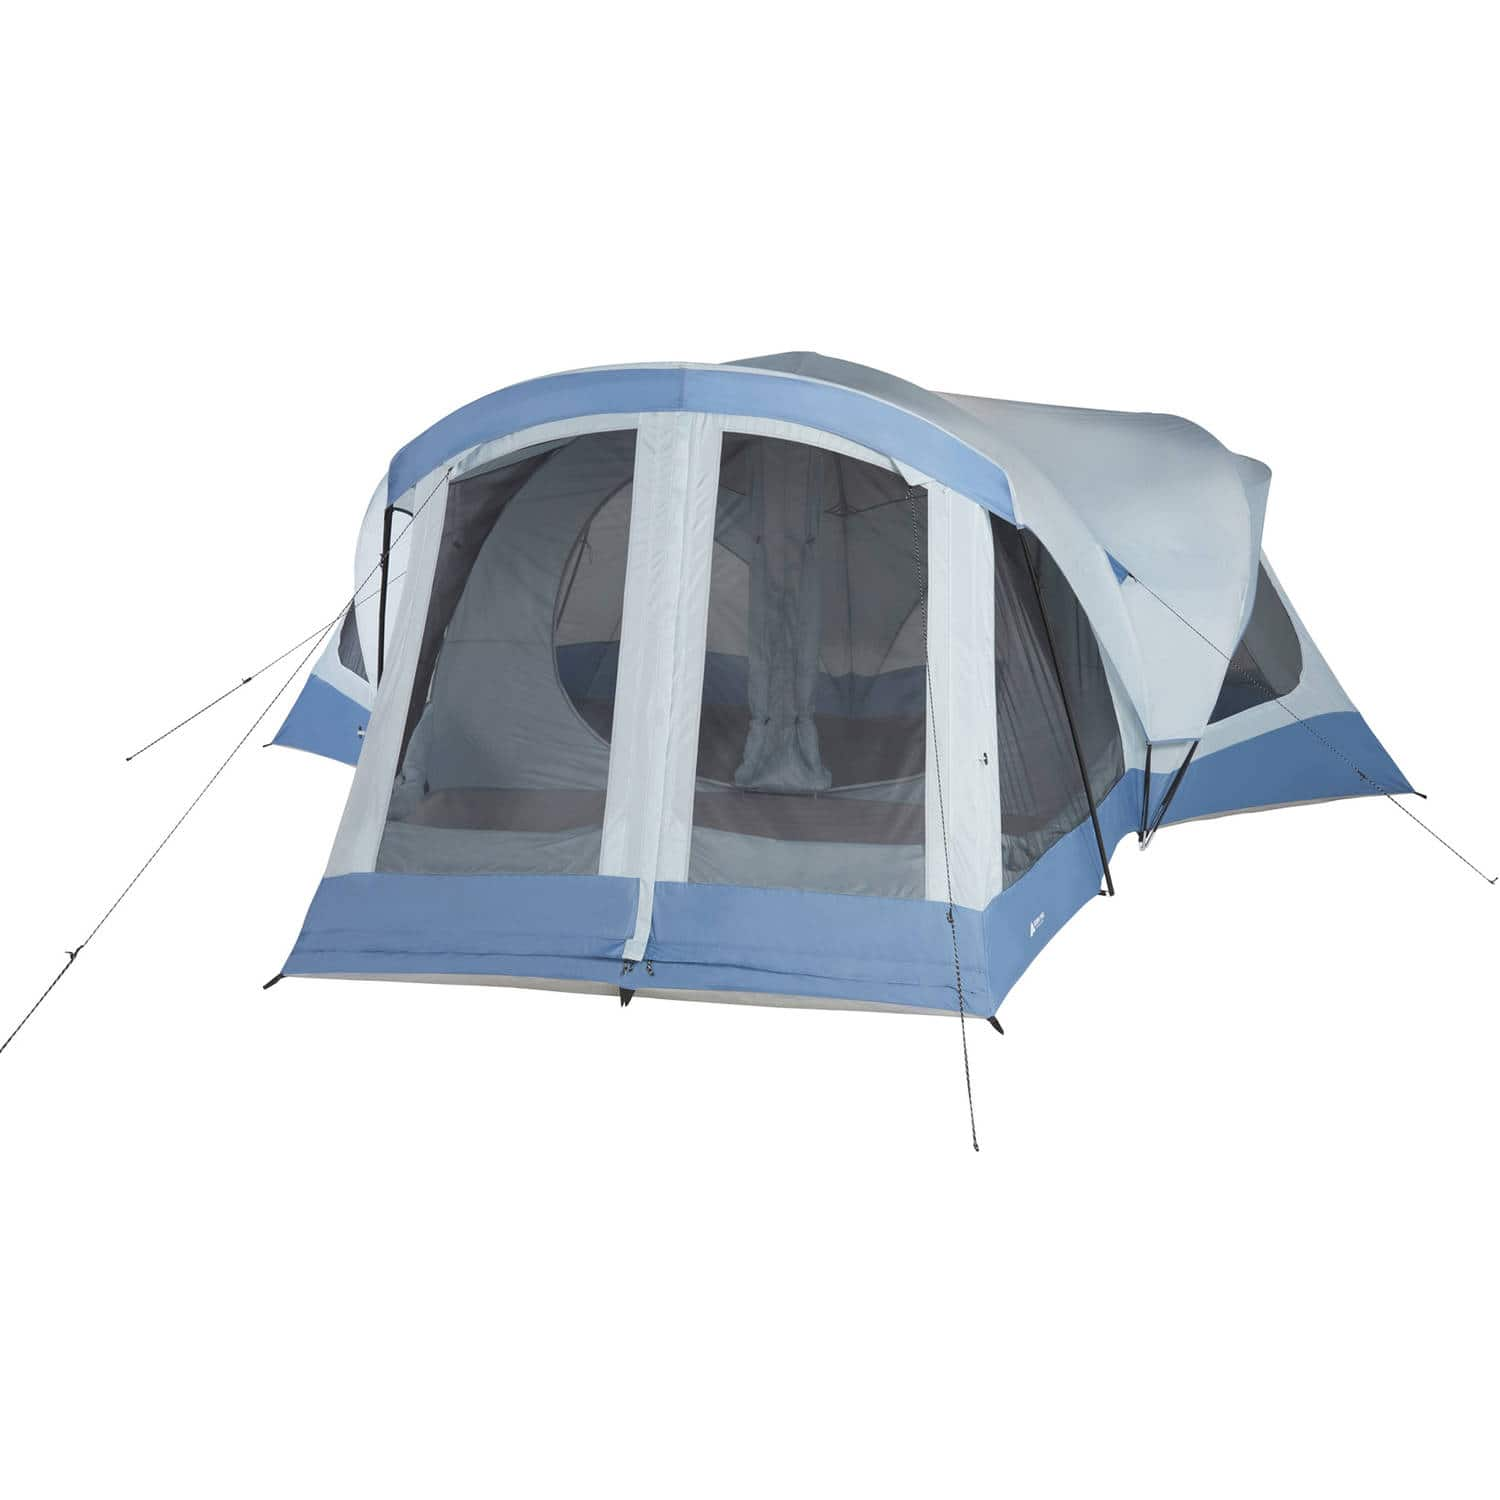 Deal Image  sc 1 st  Slickdeals & Ozark Trail Deals: 20-Person Cabin Tent $167 14-Person Tent ...